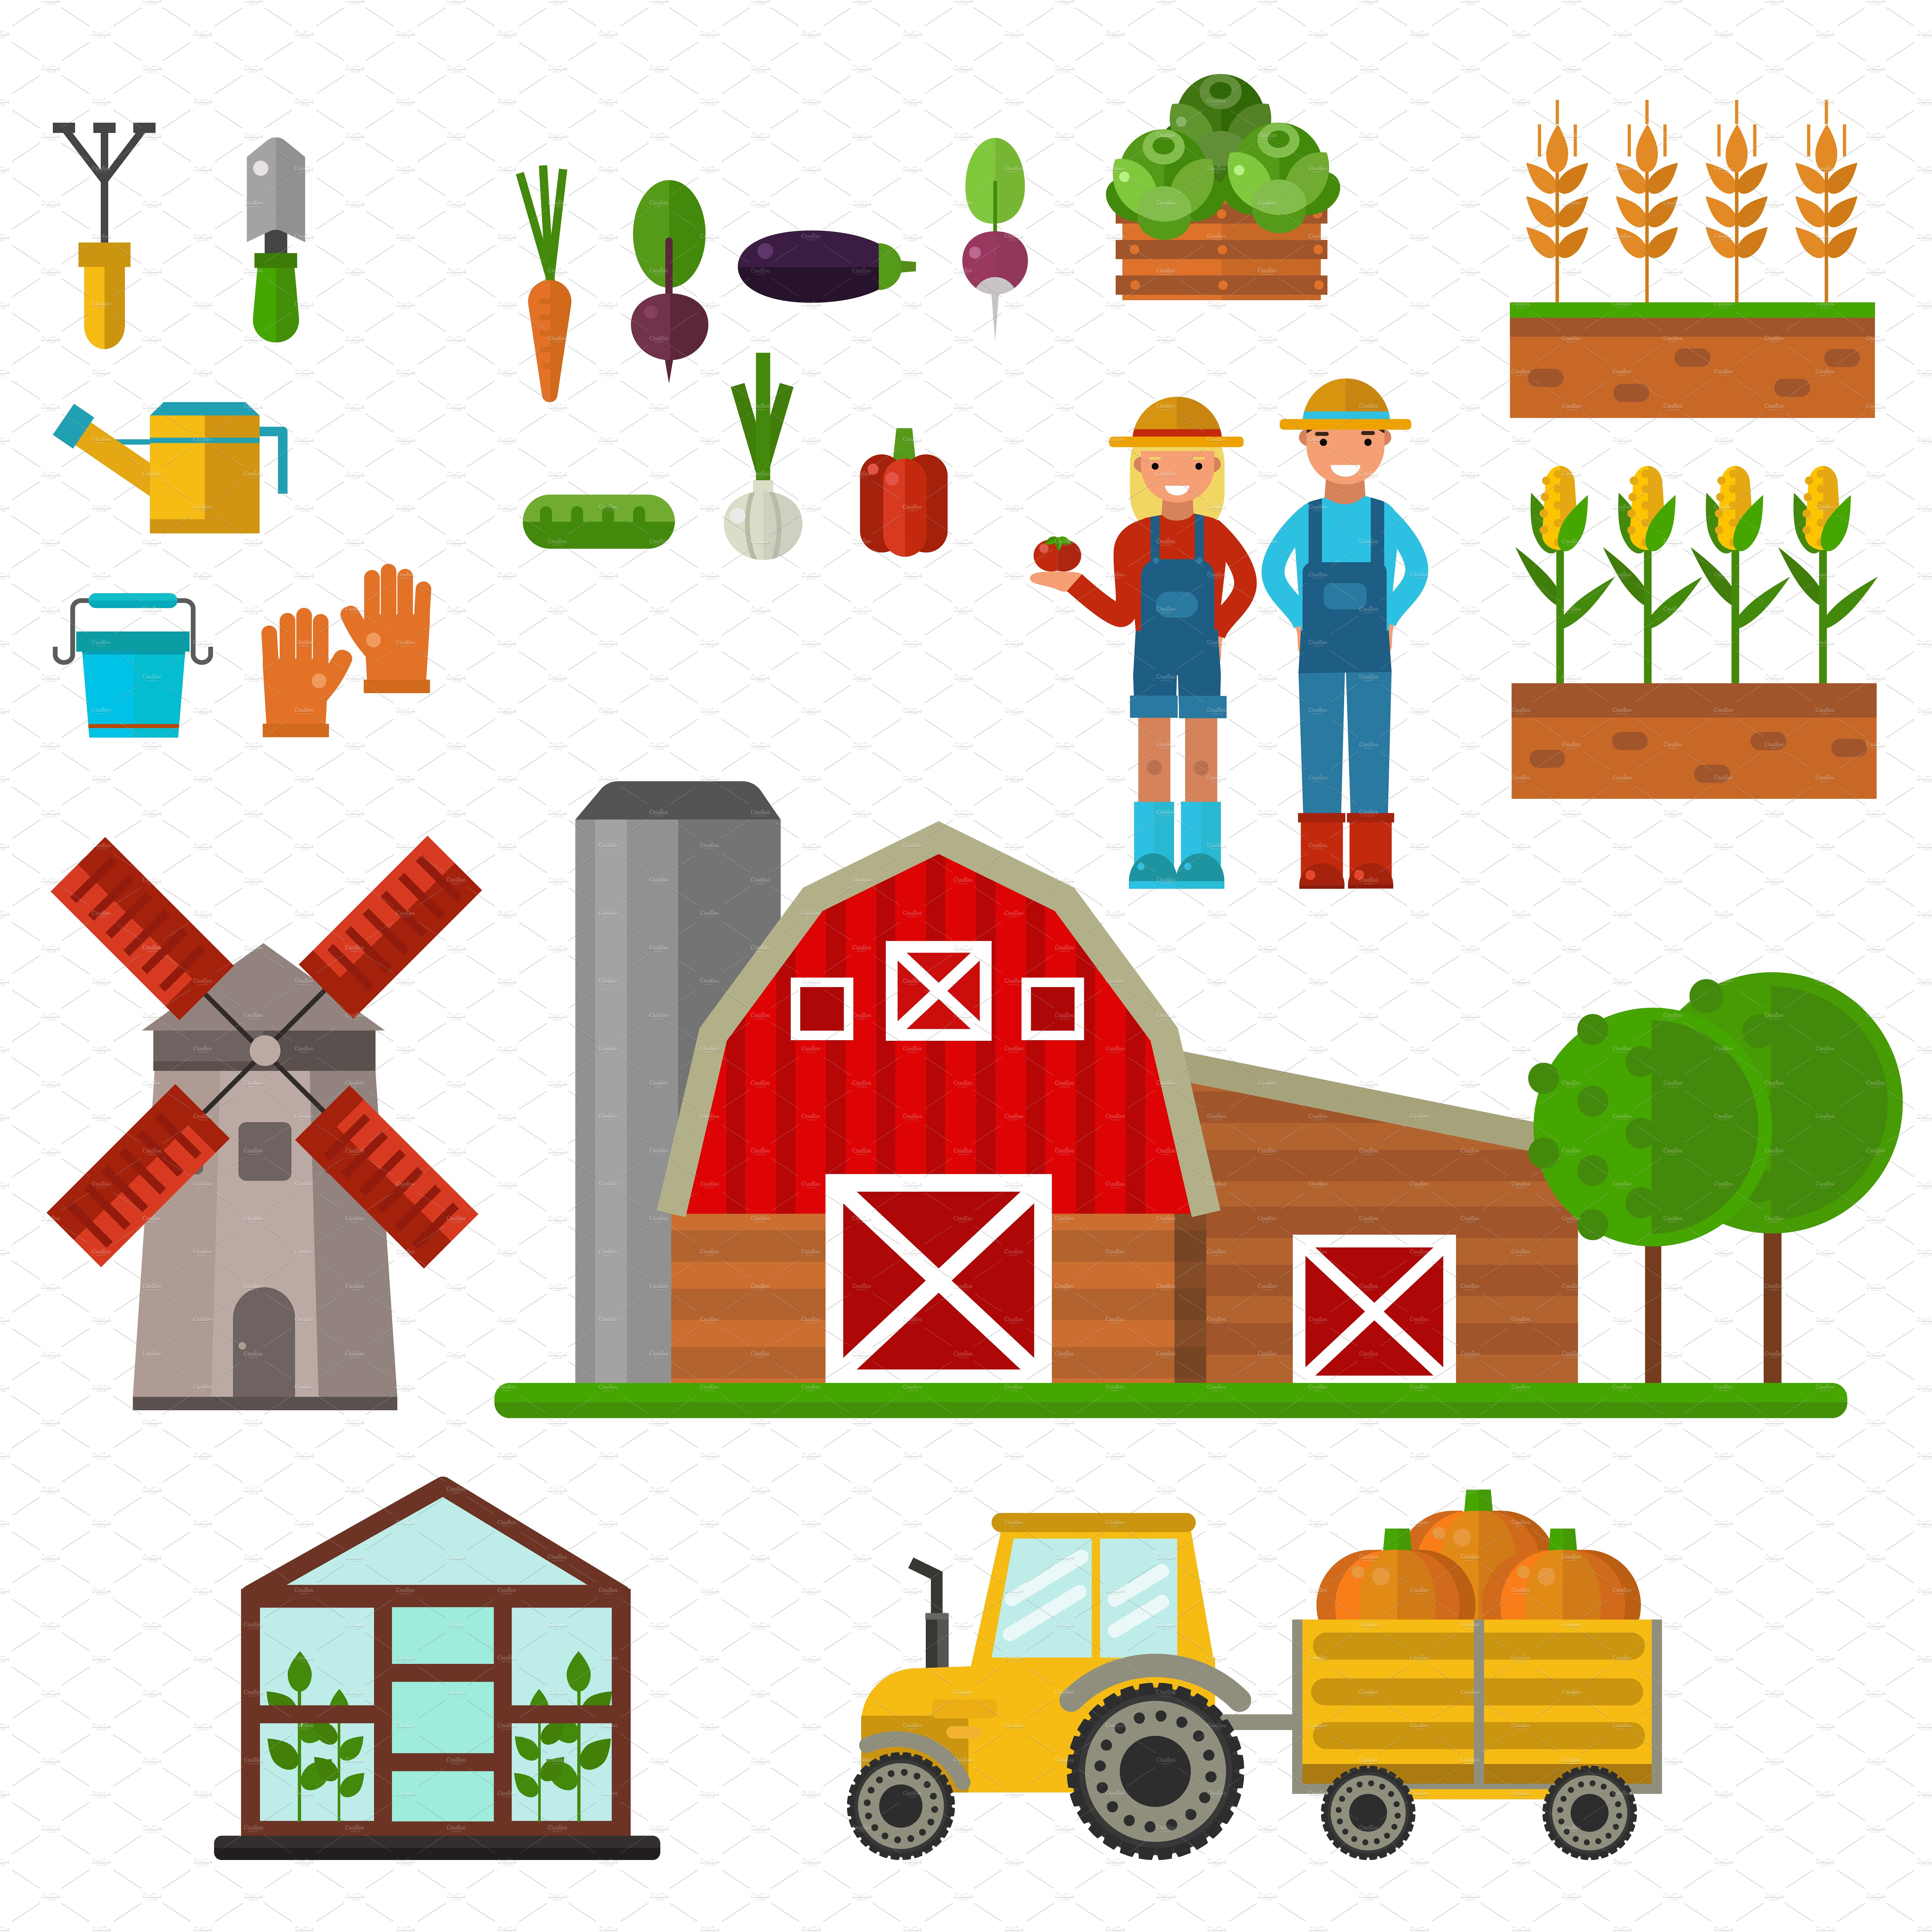 Farm symbols vector illustrations. Agriculture clipart agricultural production